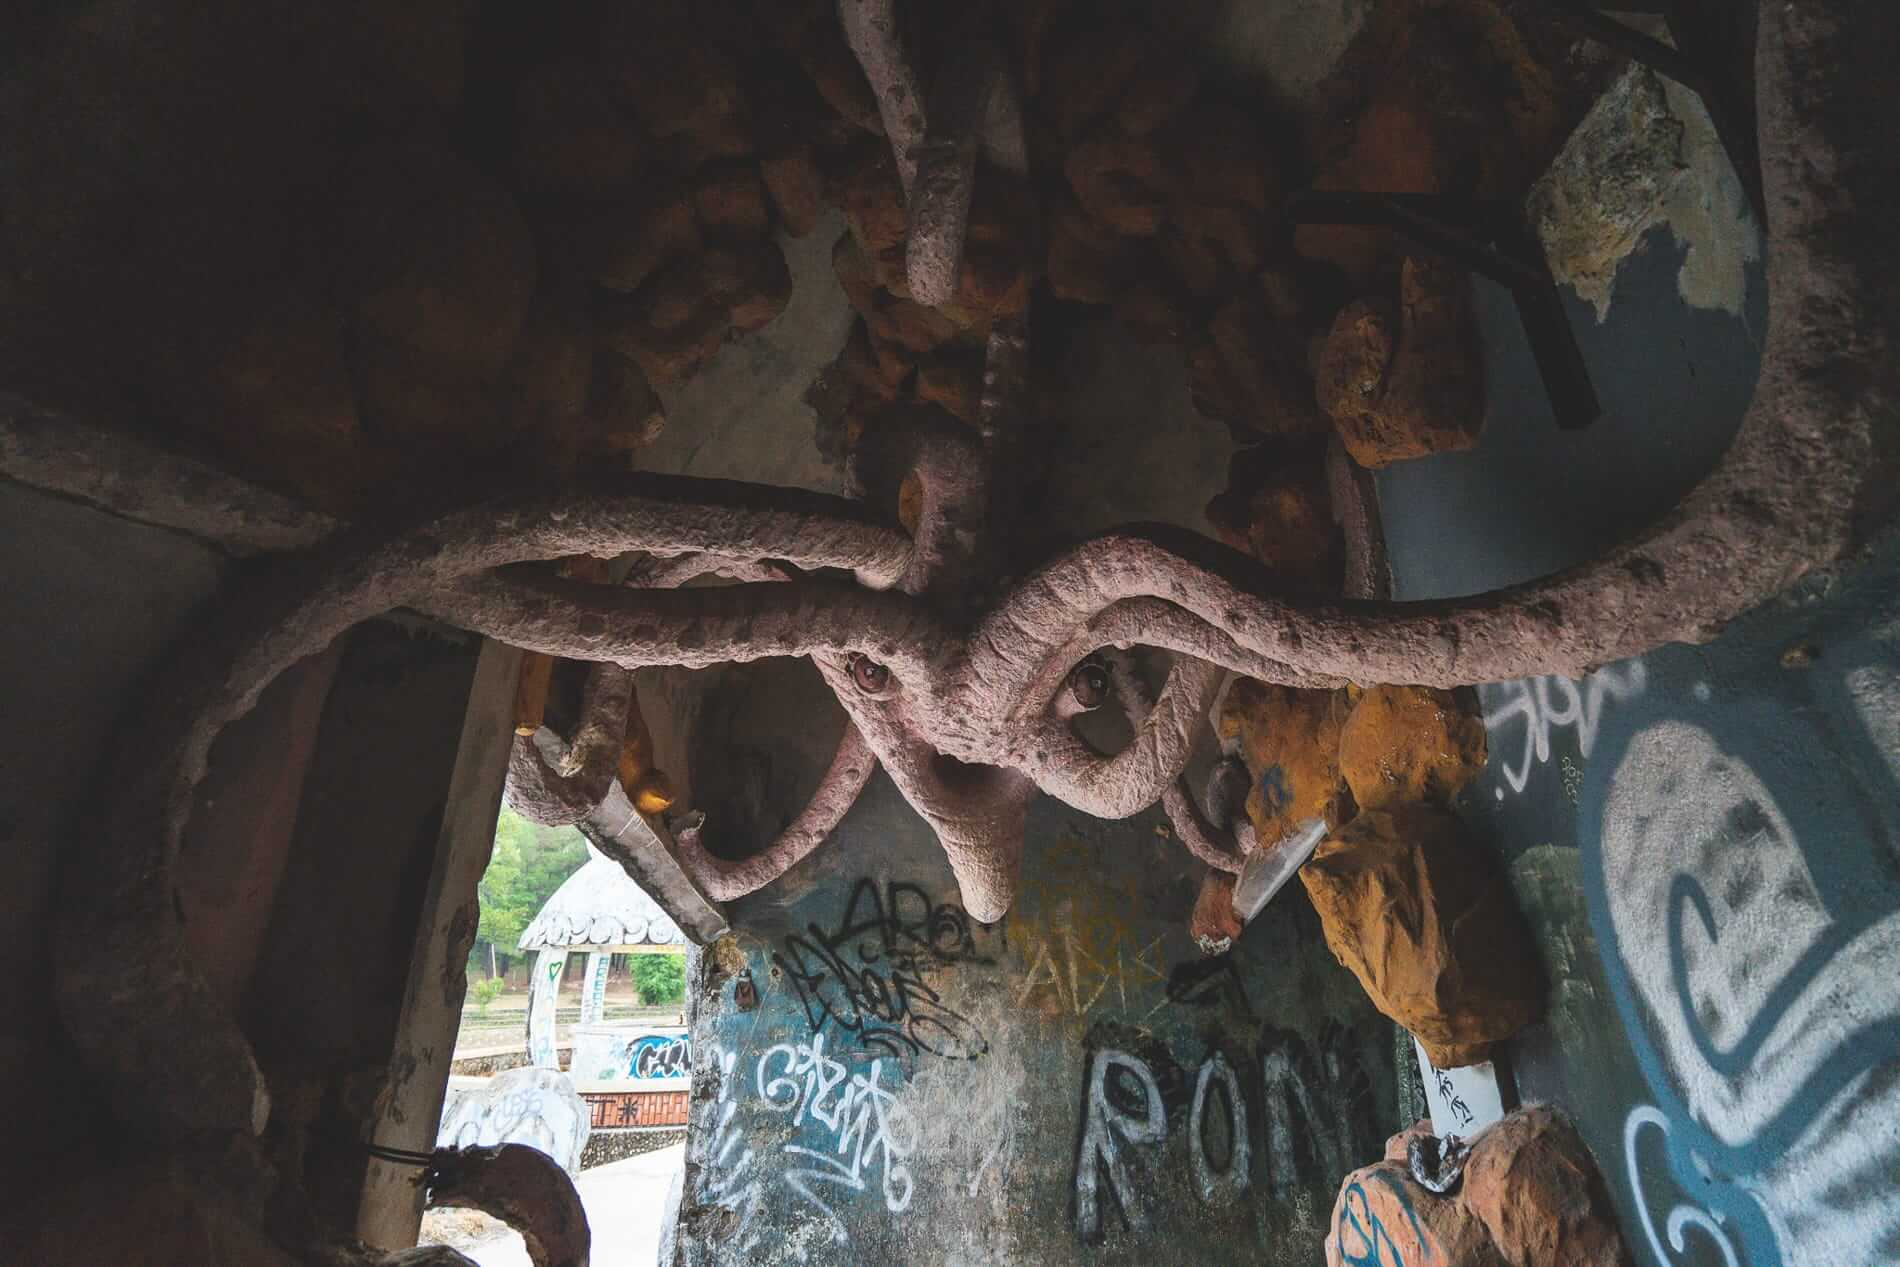 Old and vandalized - Hue's abandoned water park